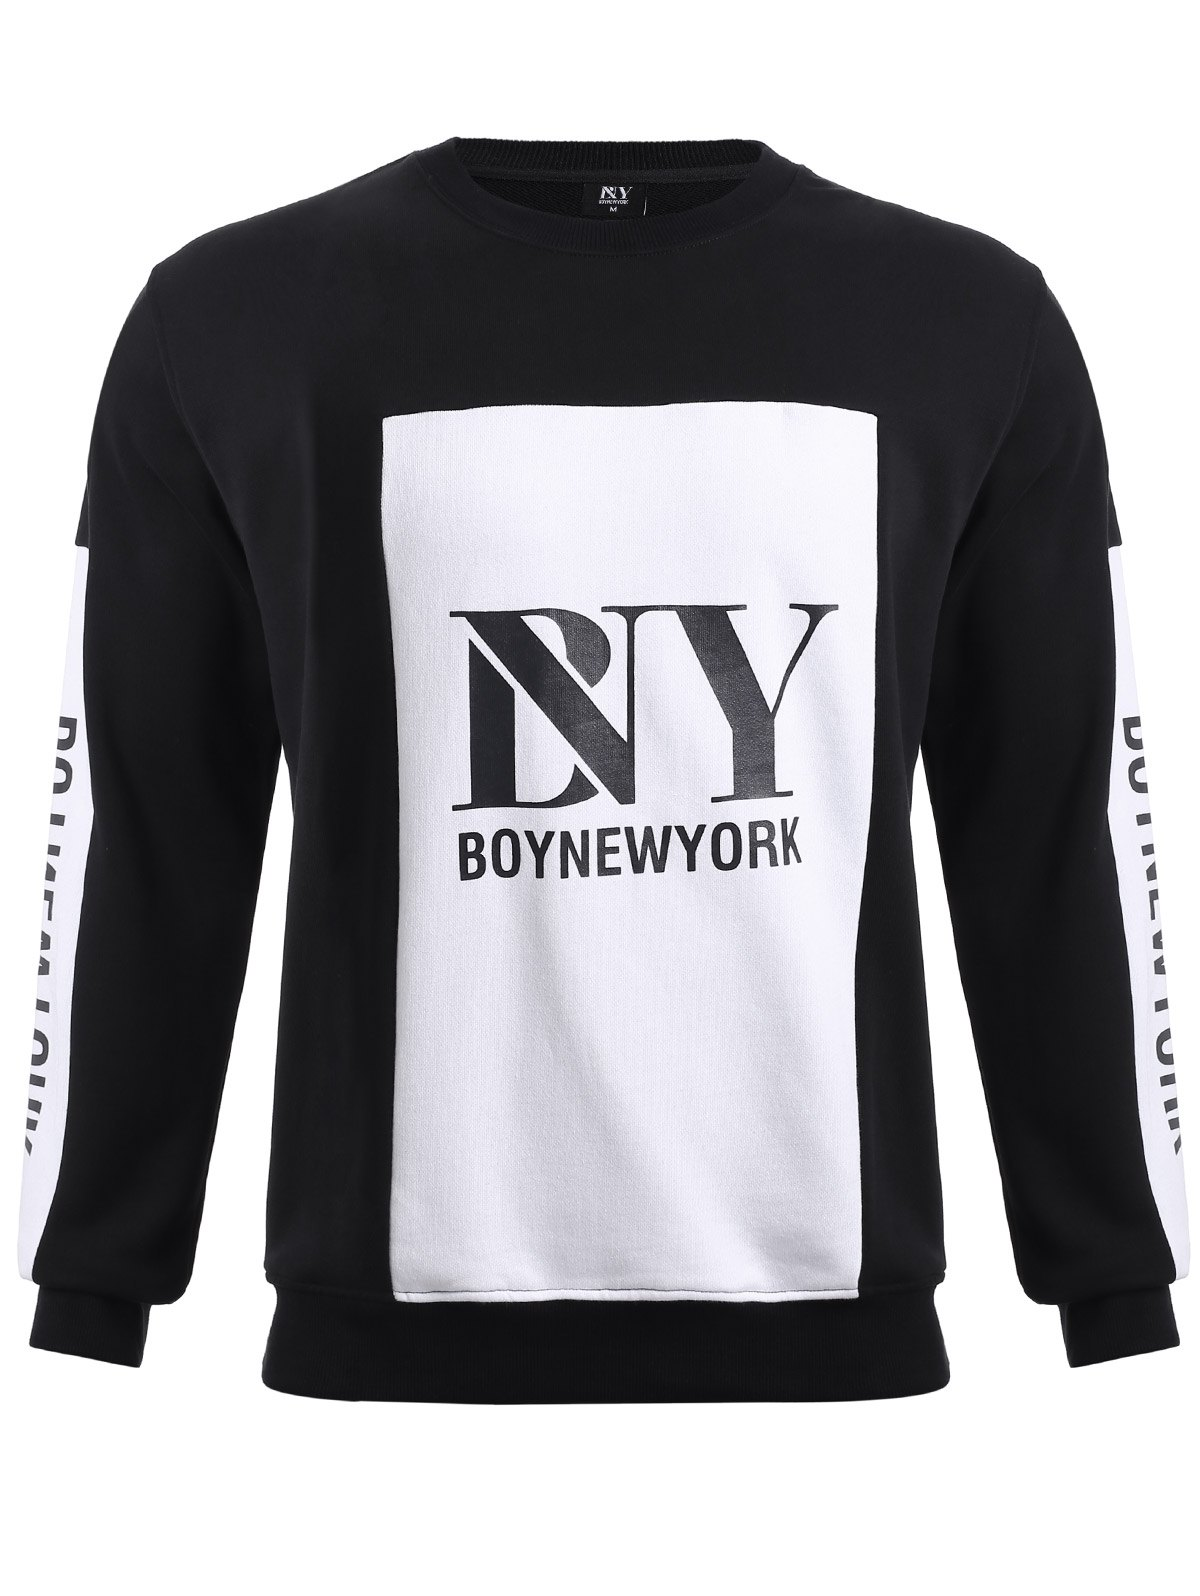 BoyNewYork Color Block Spliced Round Neck Sweatshirt - WHITE/BLACK M